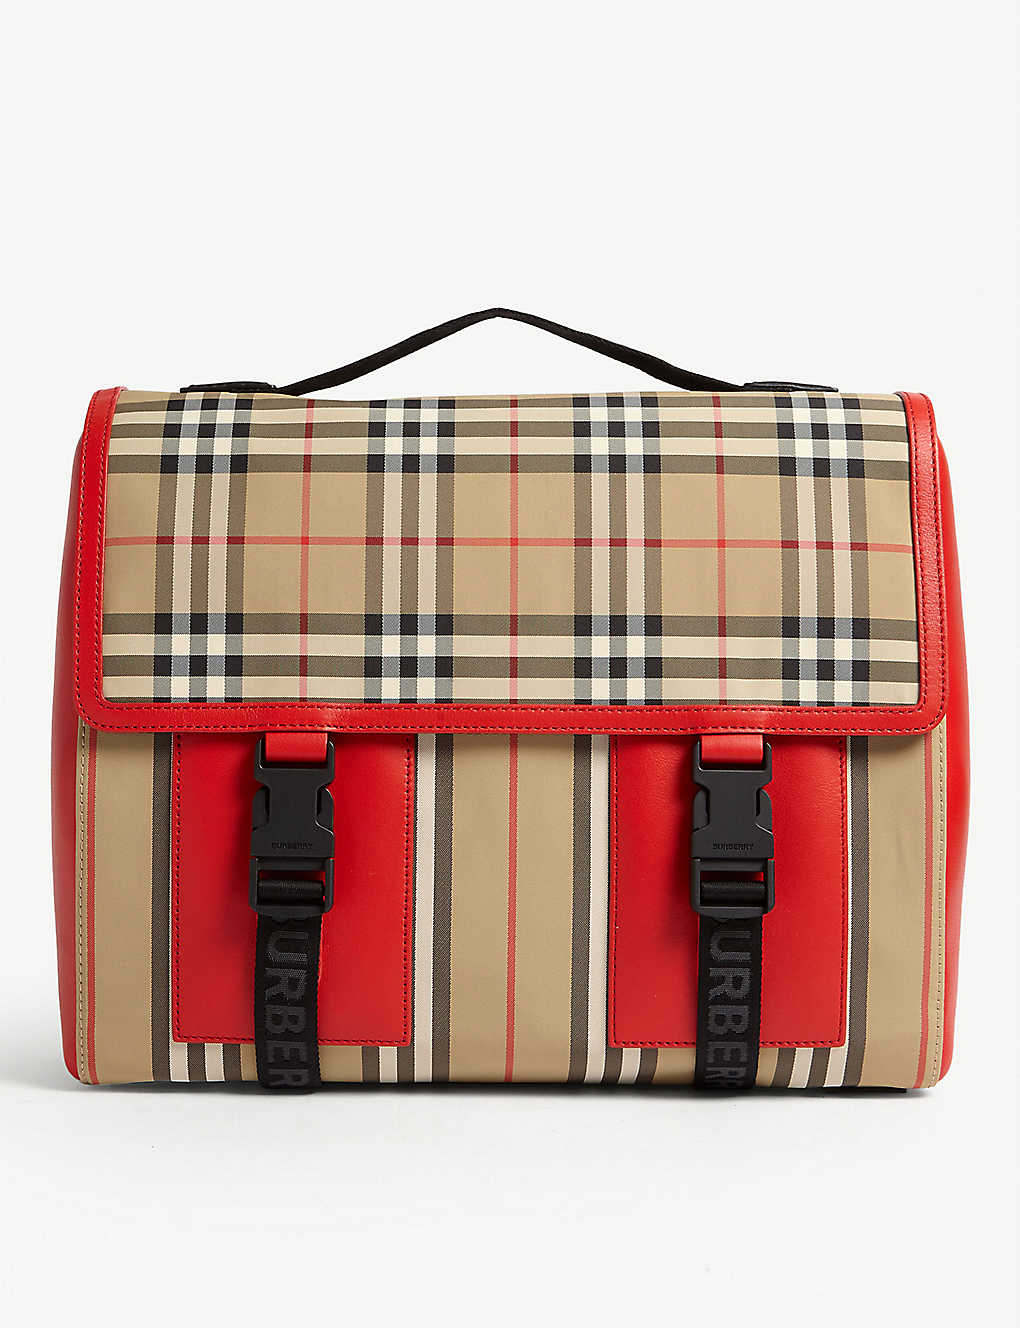 Burberry Bags Check print leather and nylon satchel